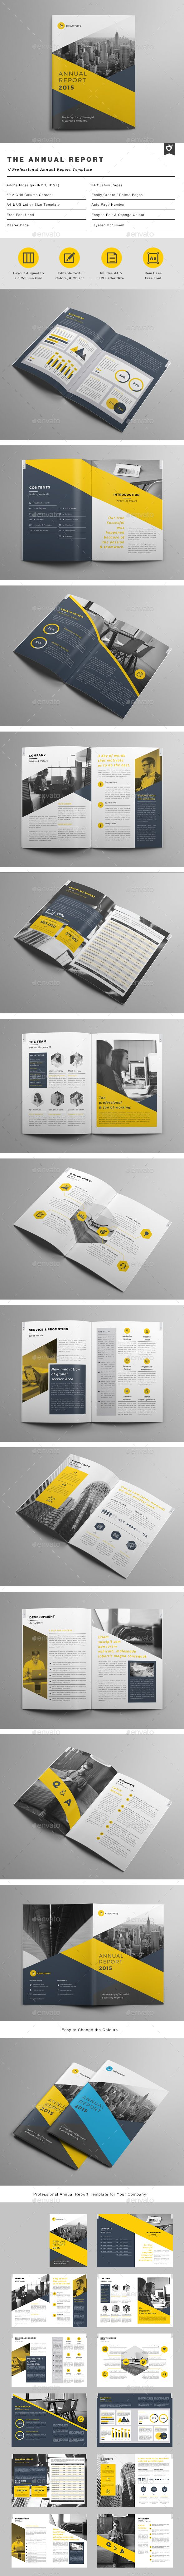 Unusual 100 Greatest Resume Words Thin 101 Modern Resume Samples Shaped 1st Birthday Invitations Templates 2013 Resume Writing Trends Youthful 2014 Calendar Template Free Black2014 Monthly Calendar Template 25  Best Ideas About Annual Report Design On Pinterest | Report ..